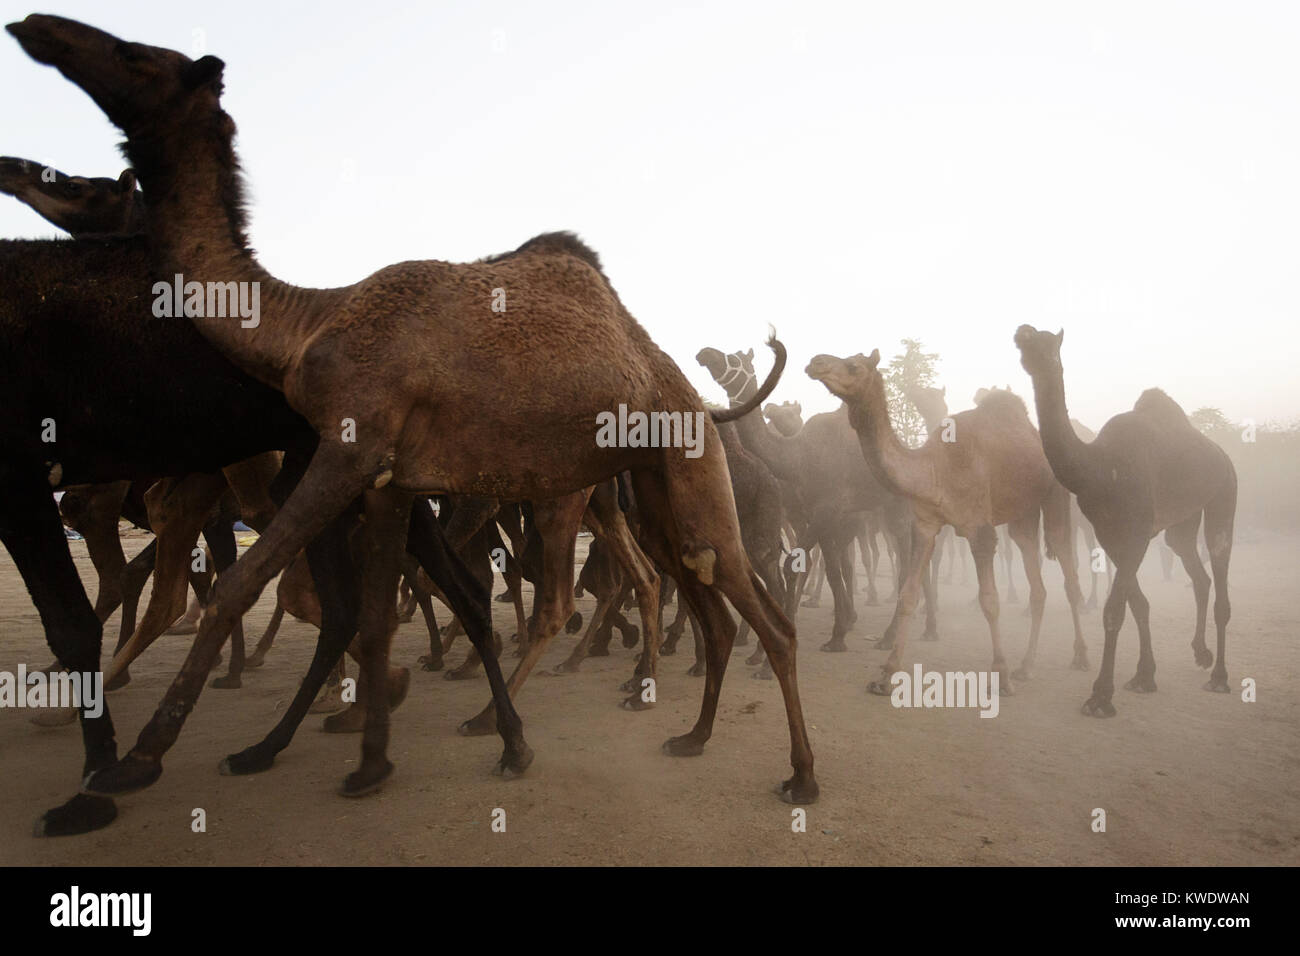 Acene at Pushkar Camel Fair, side view of herd of camels in dusty market place, Rajasthan, India - Stock Image